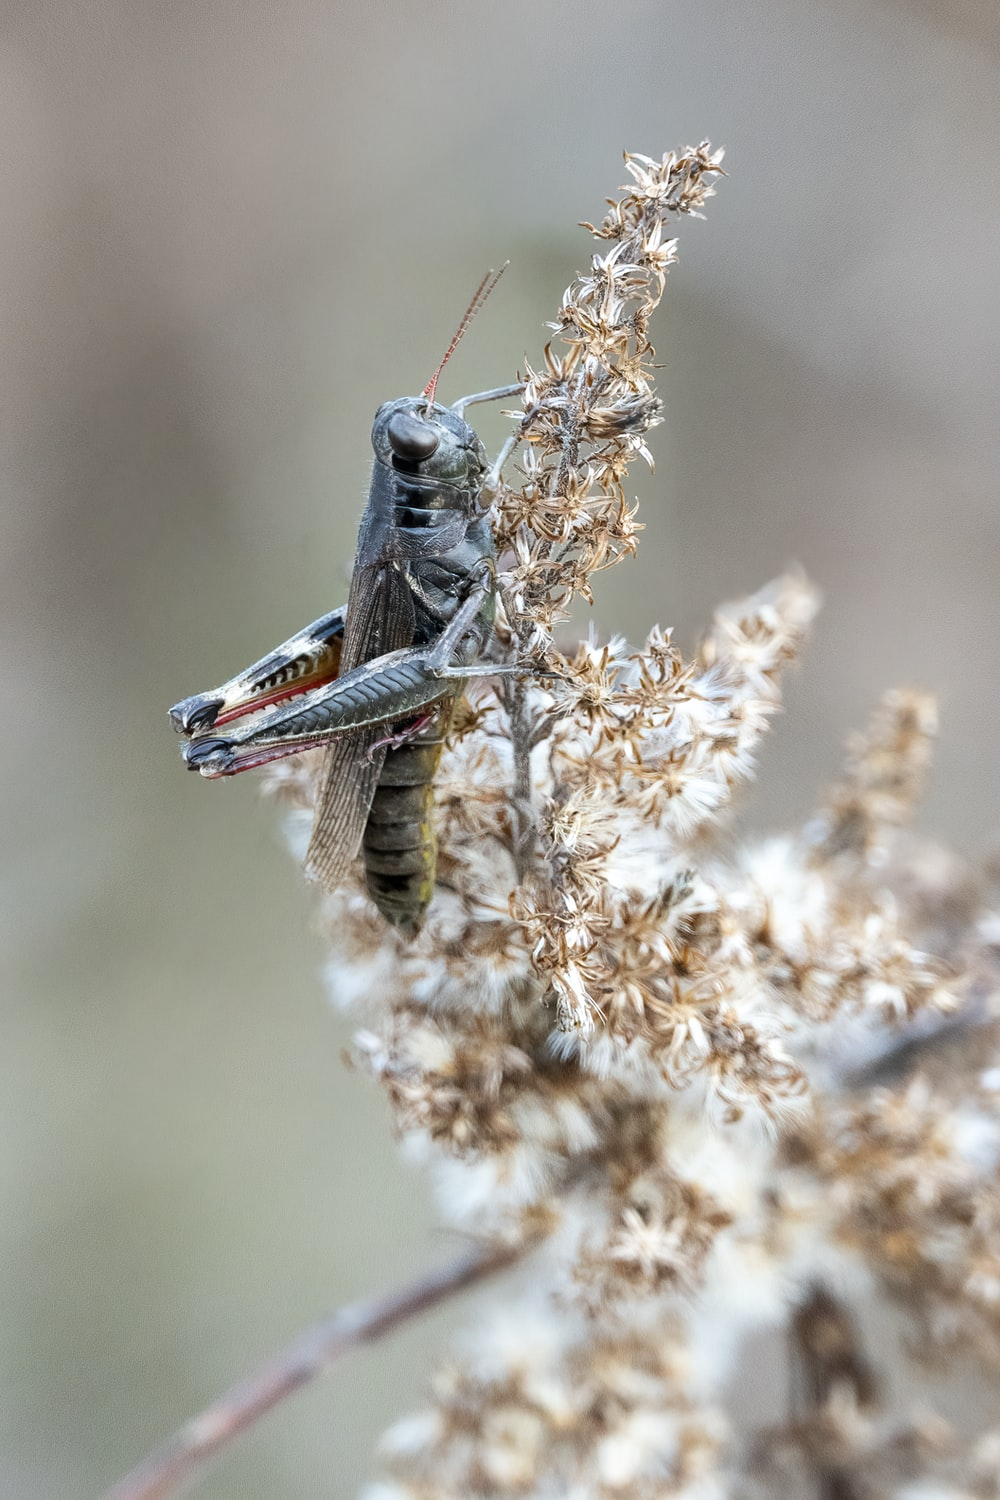 gray grasshopper perched on brown plant during daytime